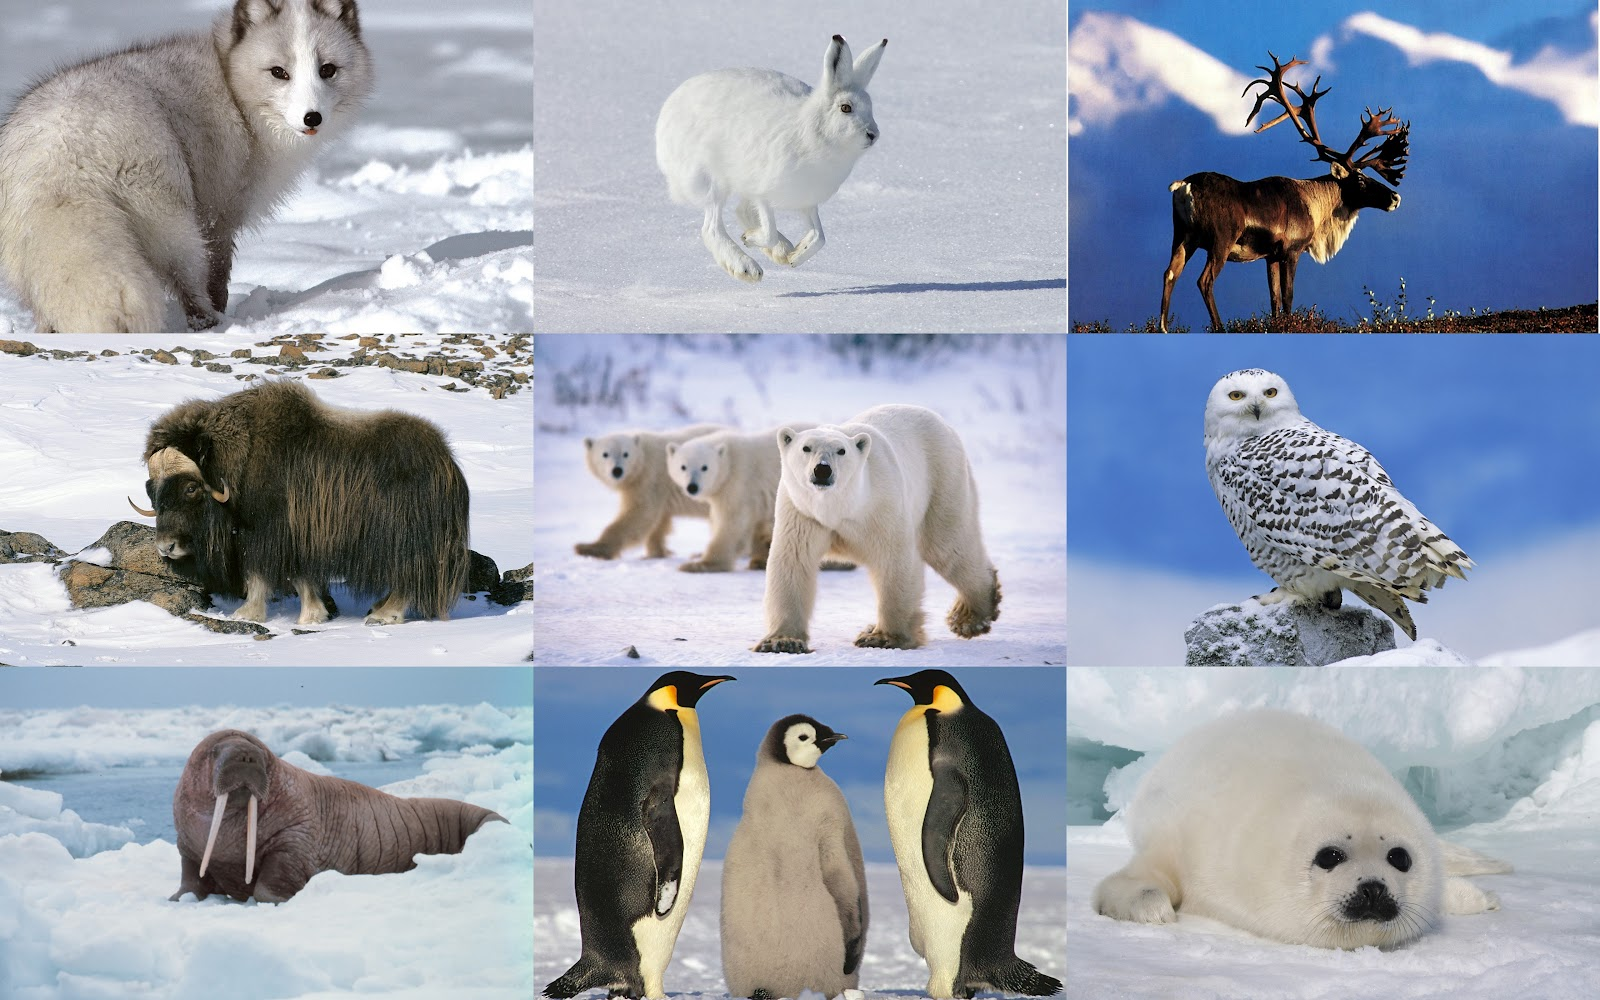 polar animals snow animal winter habitats plants cold adaptations snowy survive land hibernating irena week they